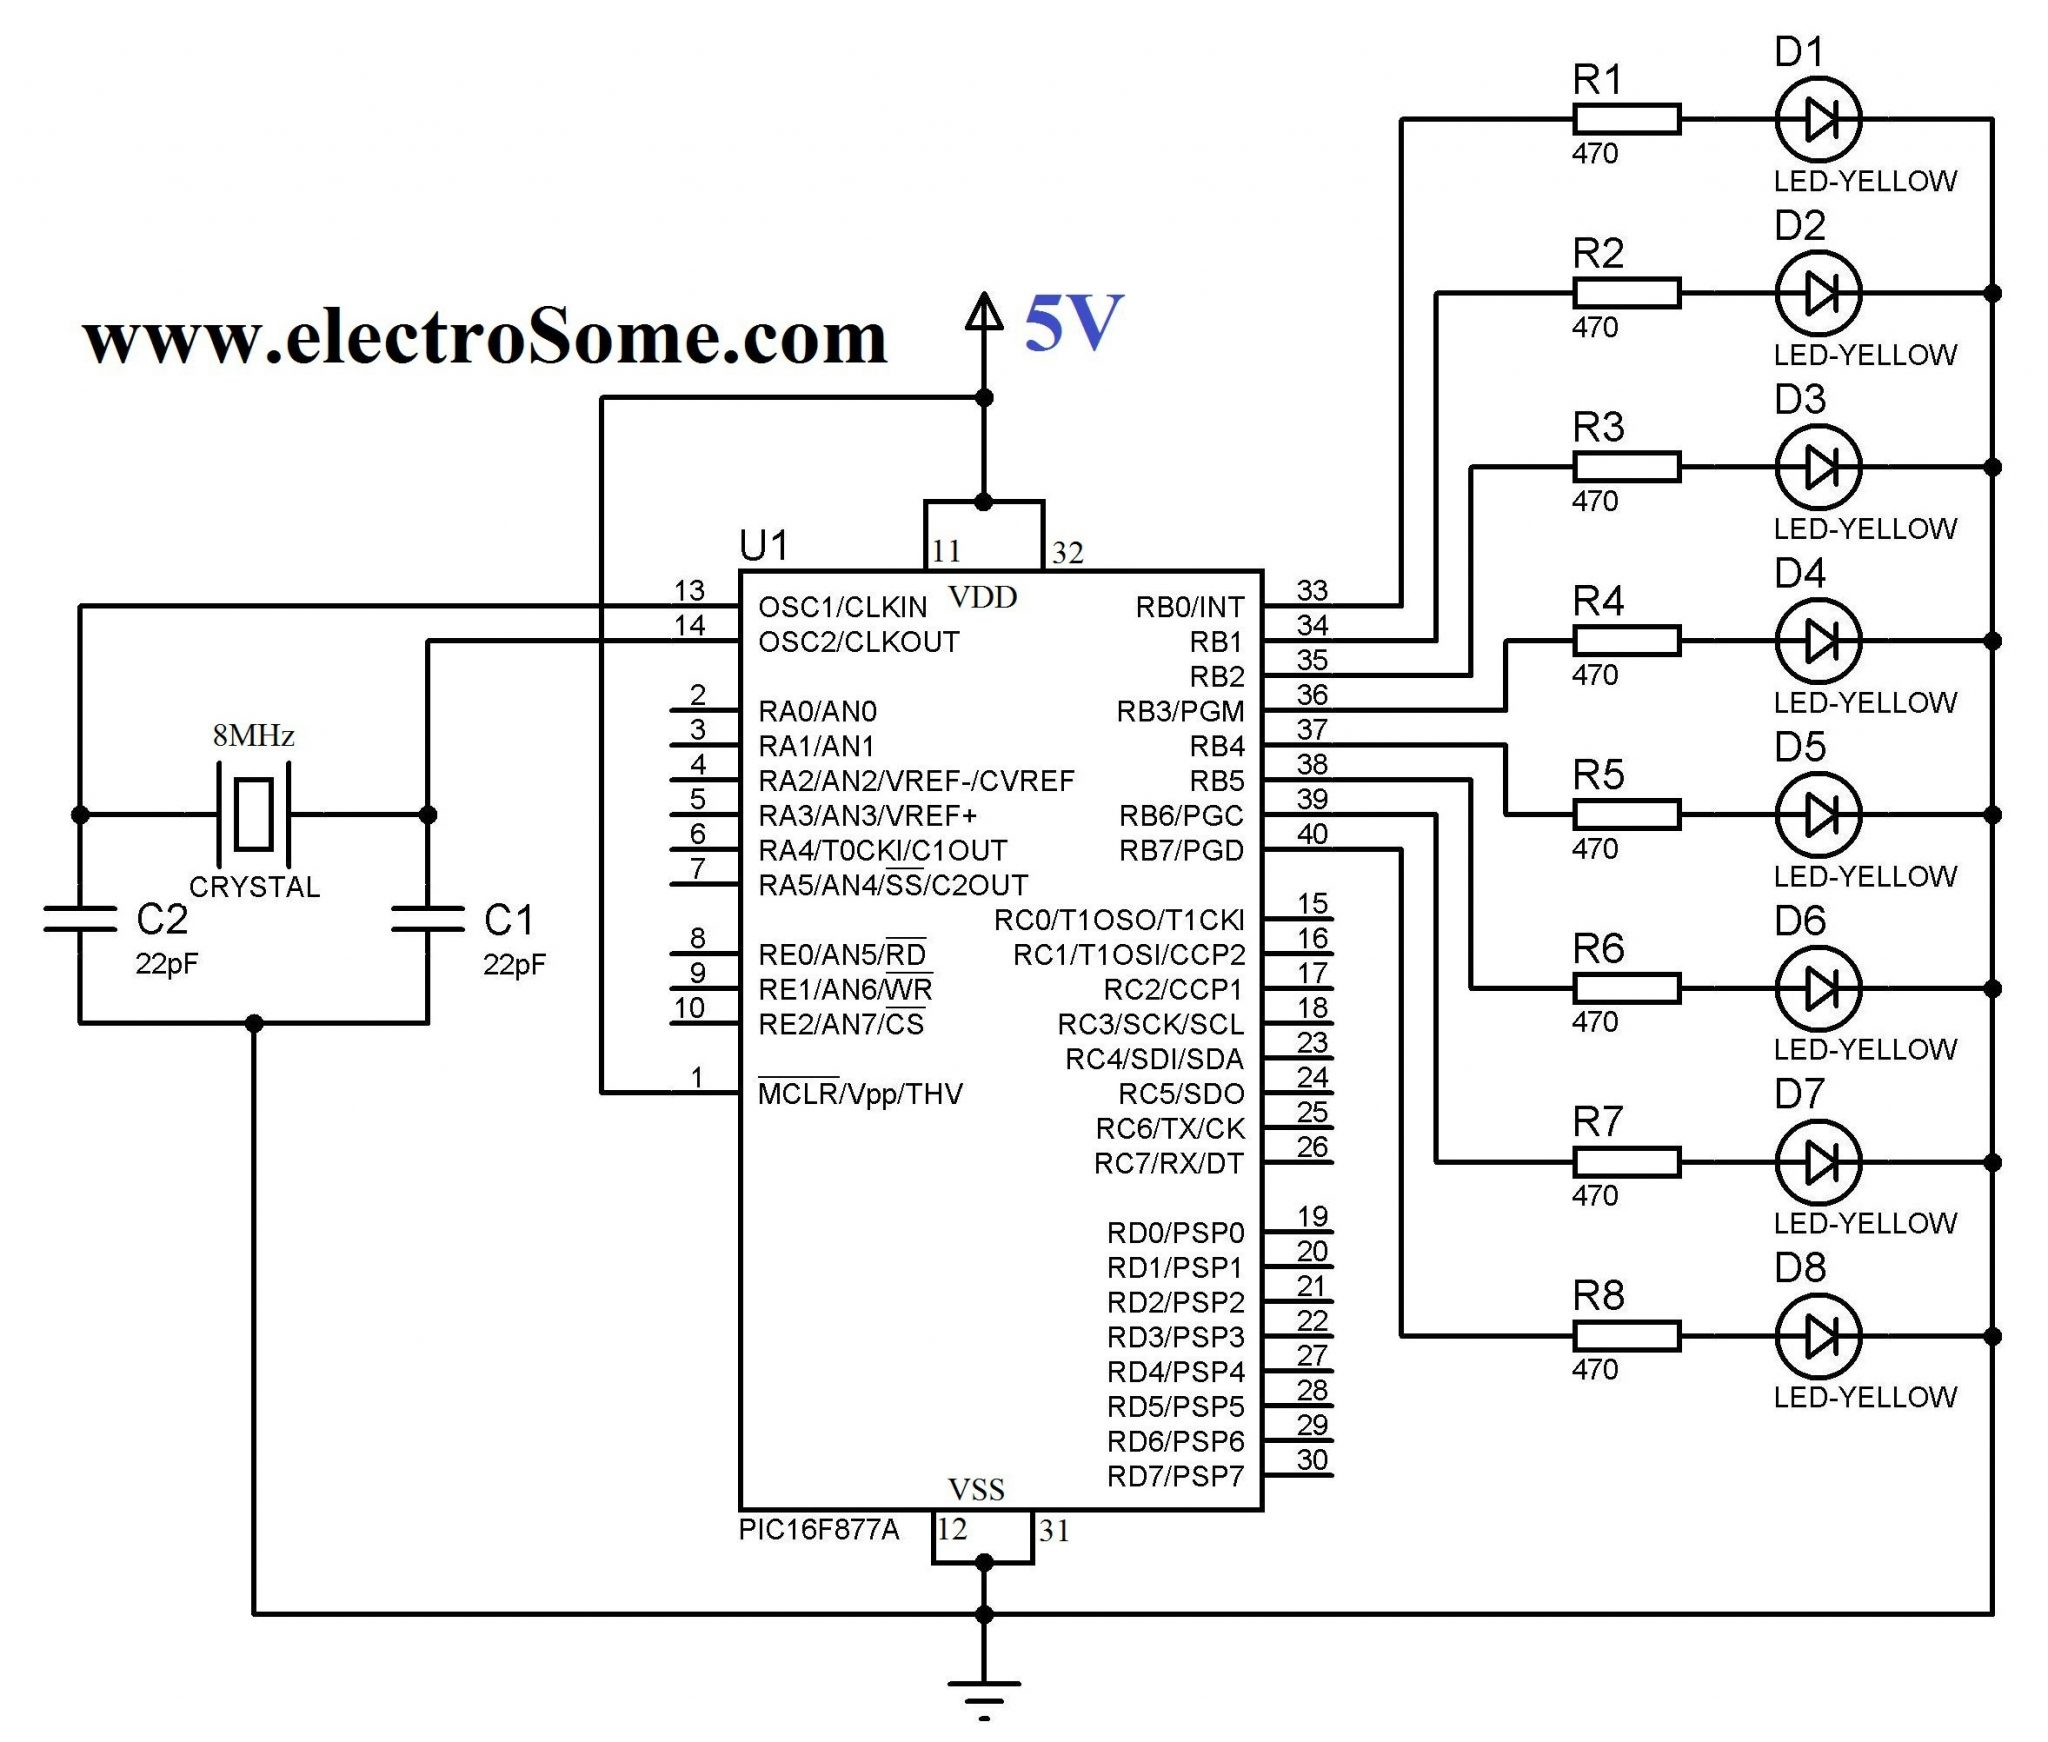 Blinking led using pic microcontroller hi tech c compiler and mplab blinking led using pic microcontroller circuit diagram ccuart Gallery